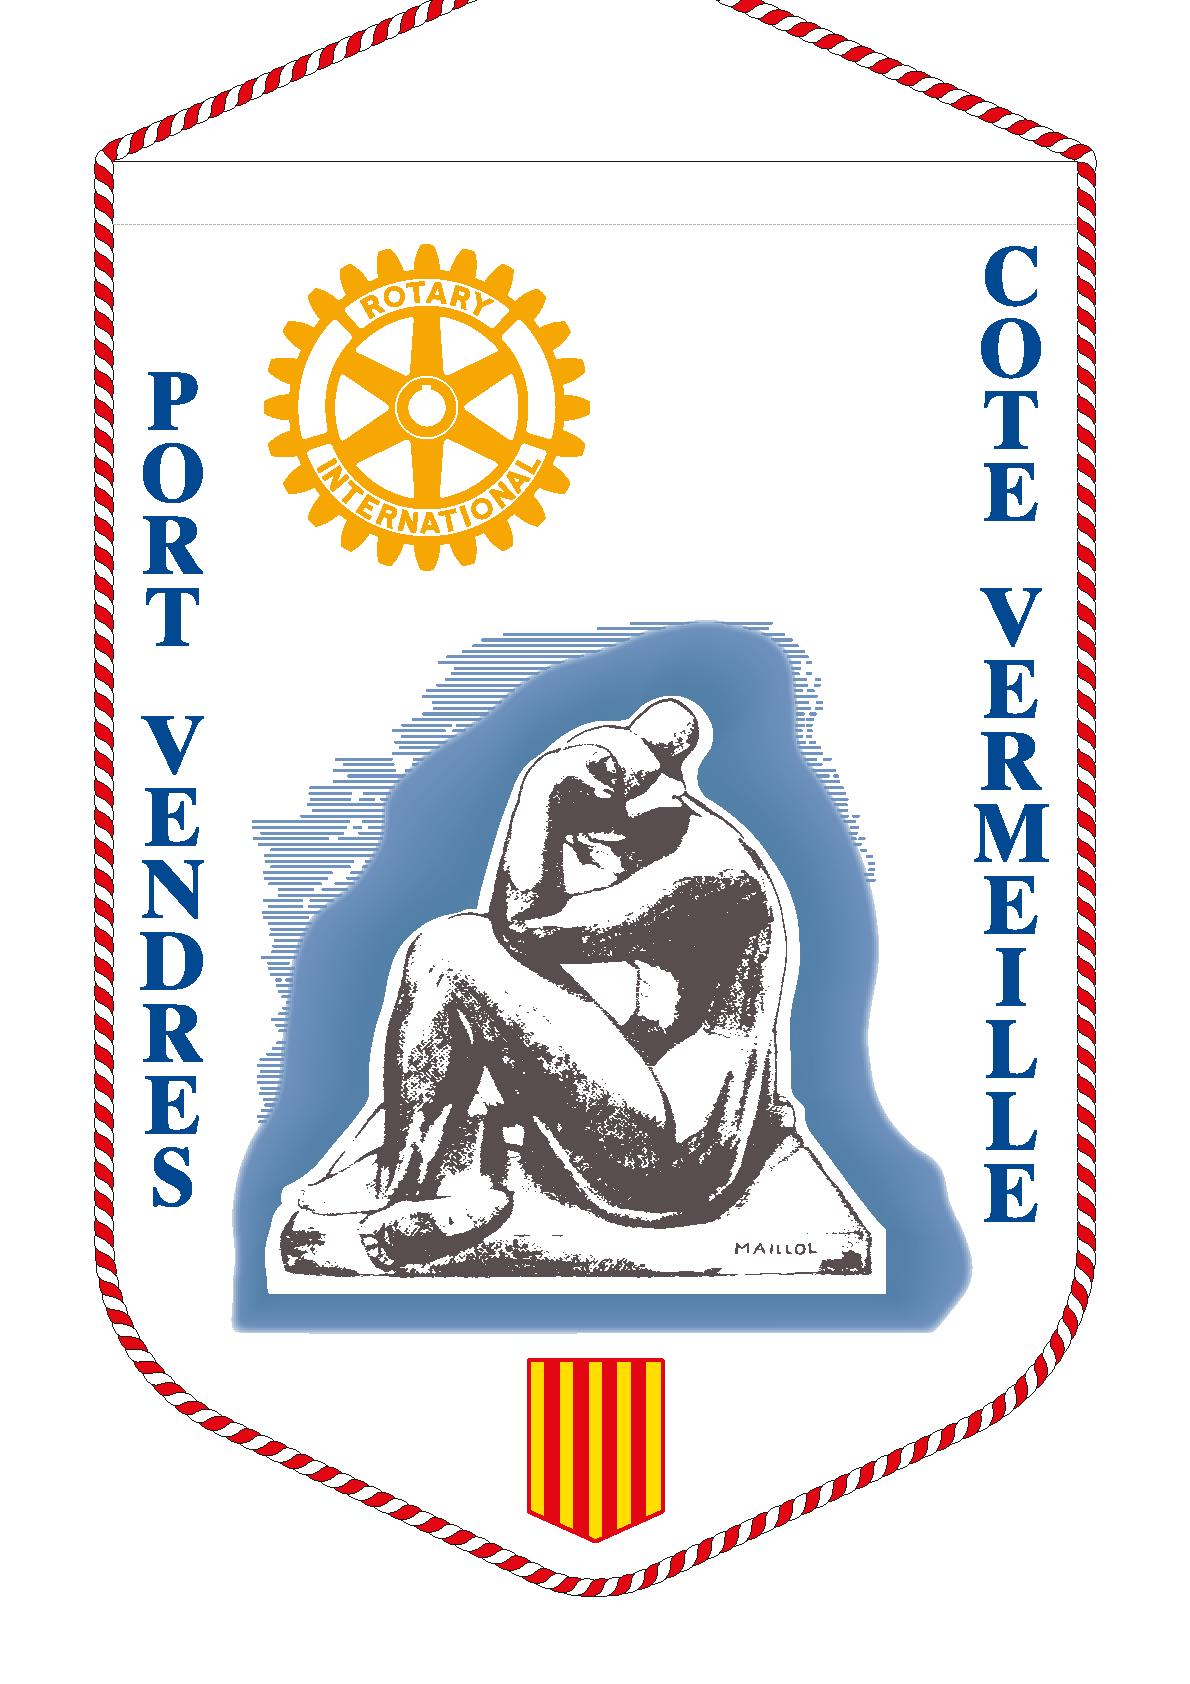 FANION ROTARY CLUB PORT VENDRES COTE VERMEILLE